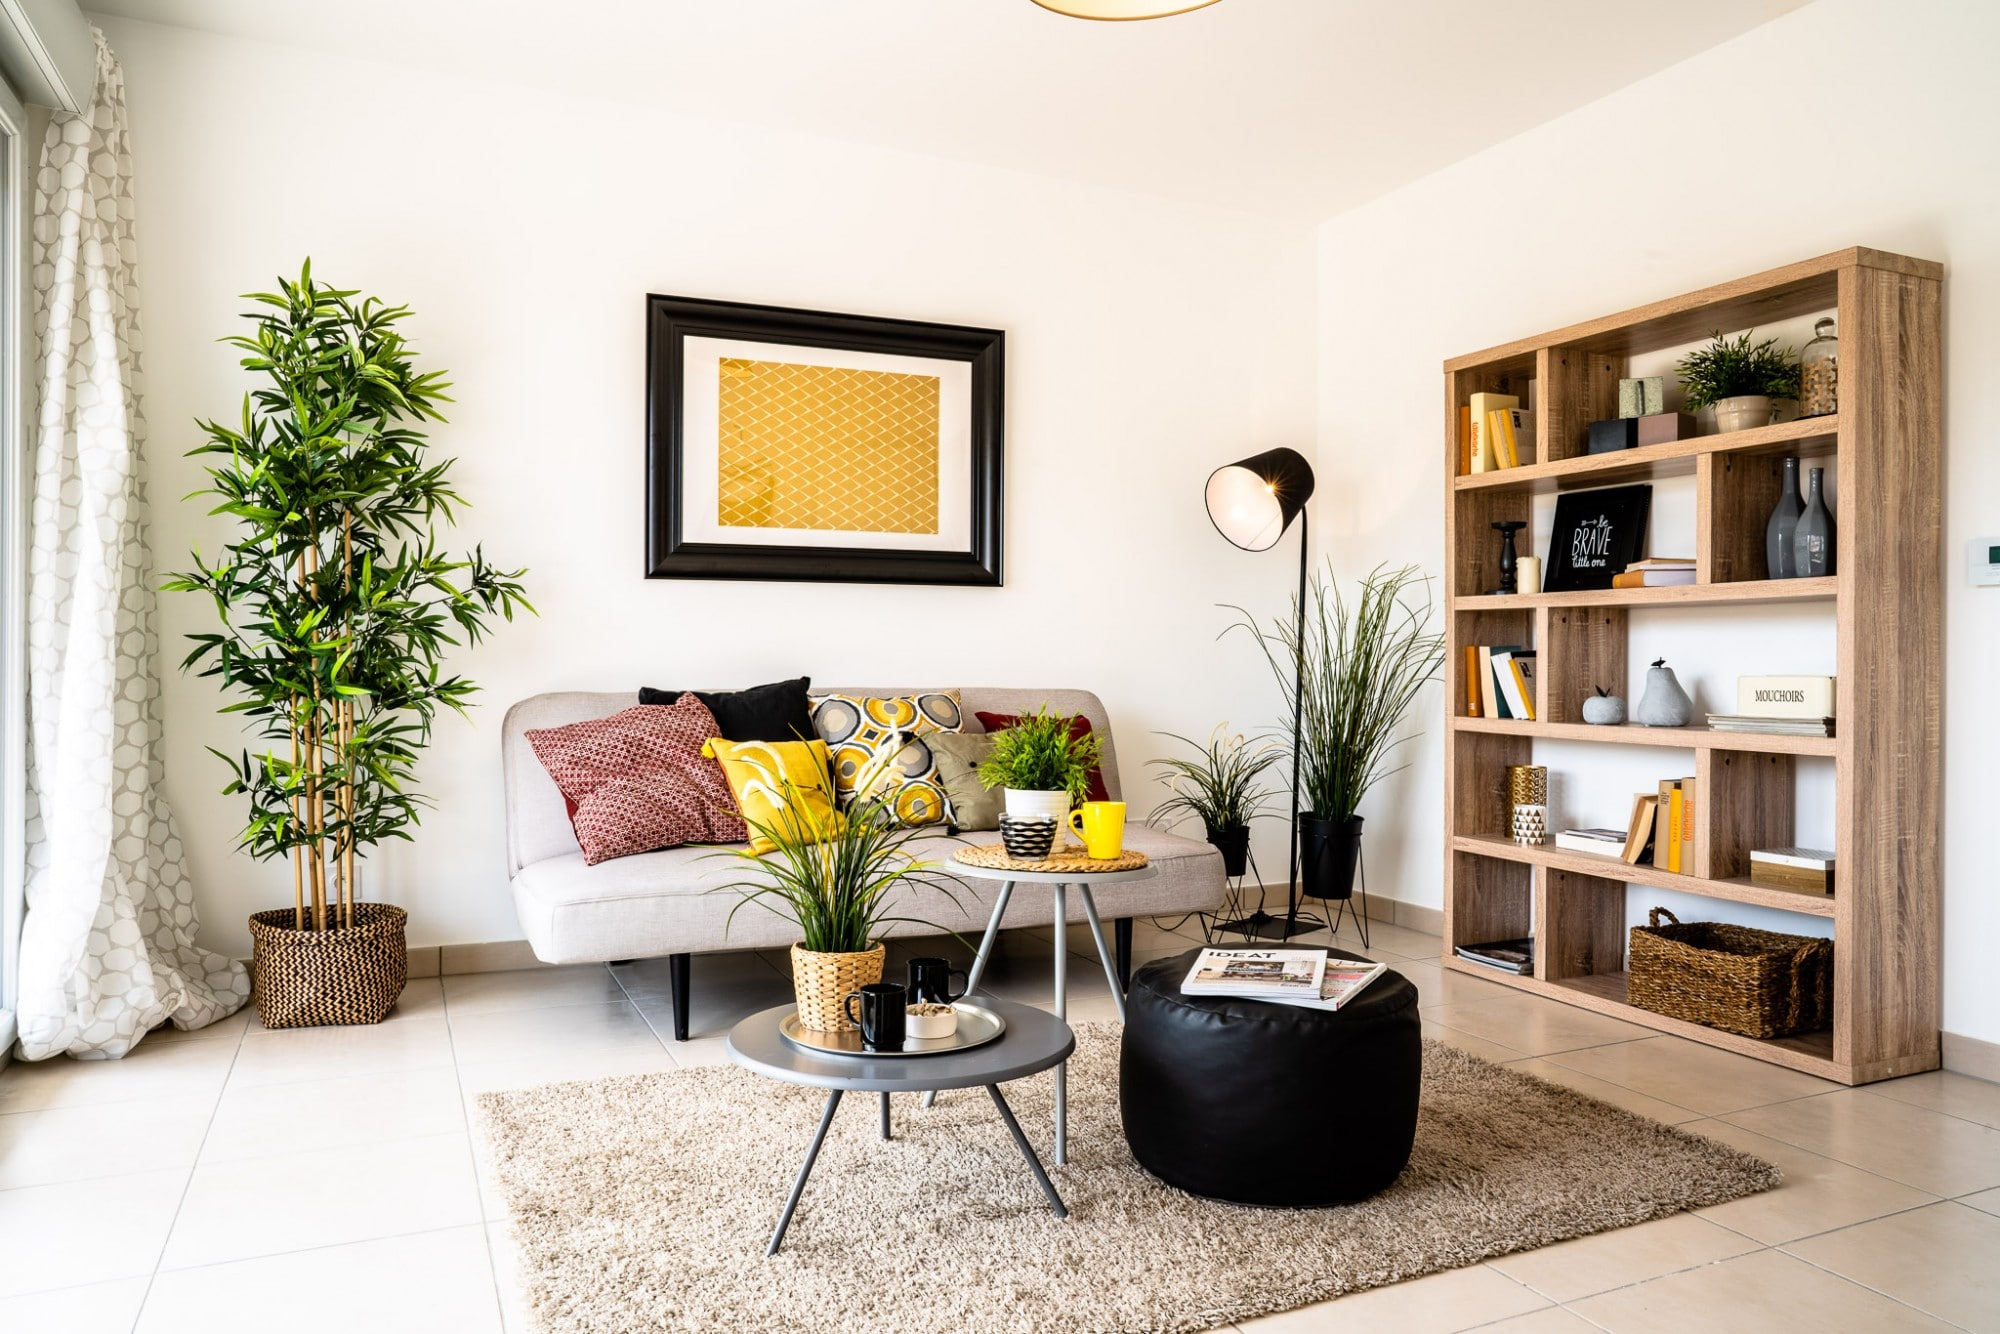 Home Staging Experts : Réseau National de Home Staging en France